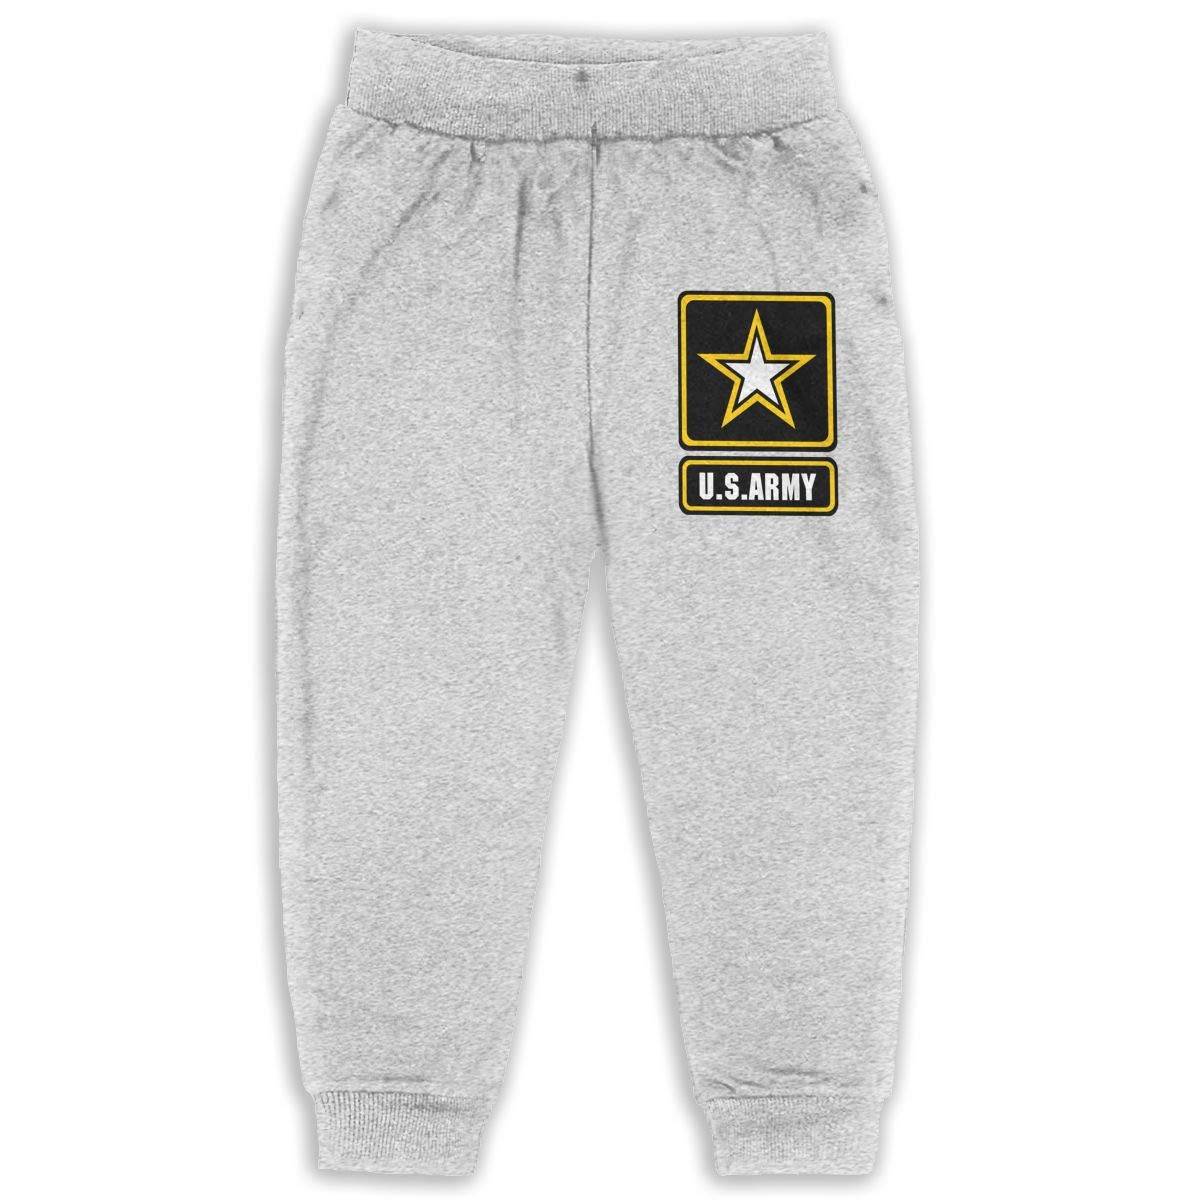 Never-Cold Us Army Star Boys Sweatpants Elastic Waist Pants for 2T-6T